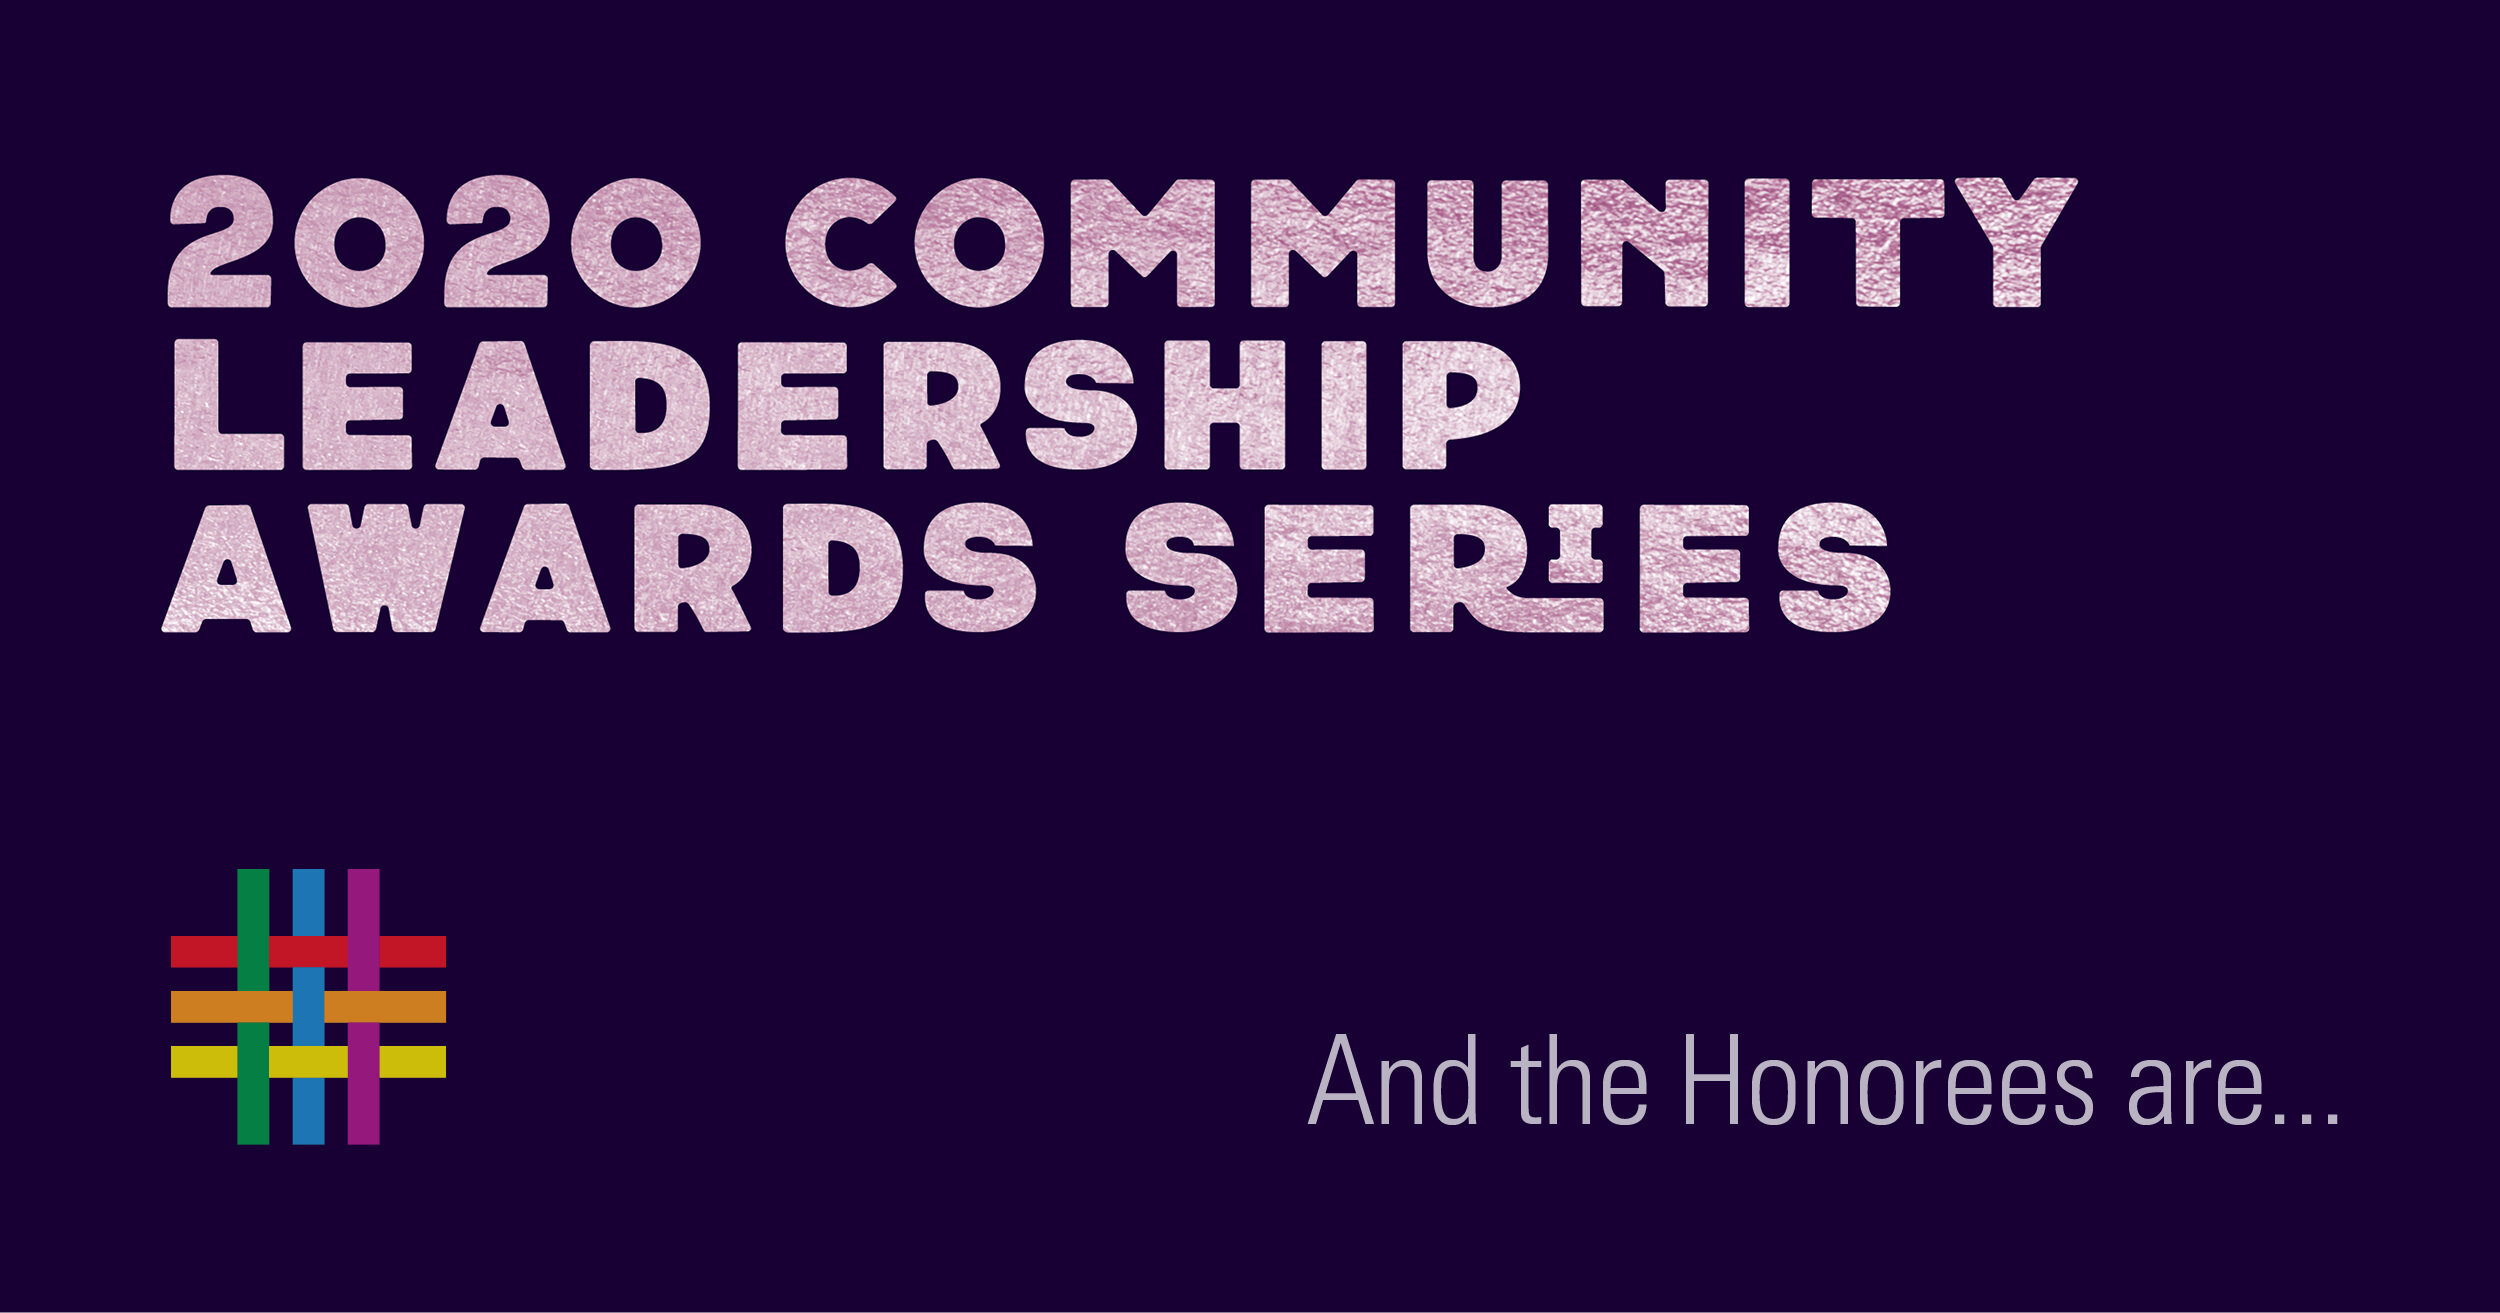 Brooklyn Community Pride Center's 2020 Community Leadership Awards